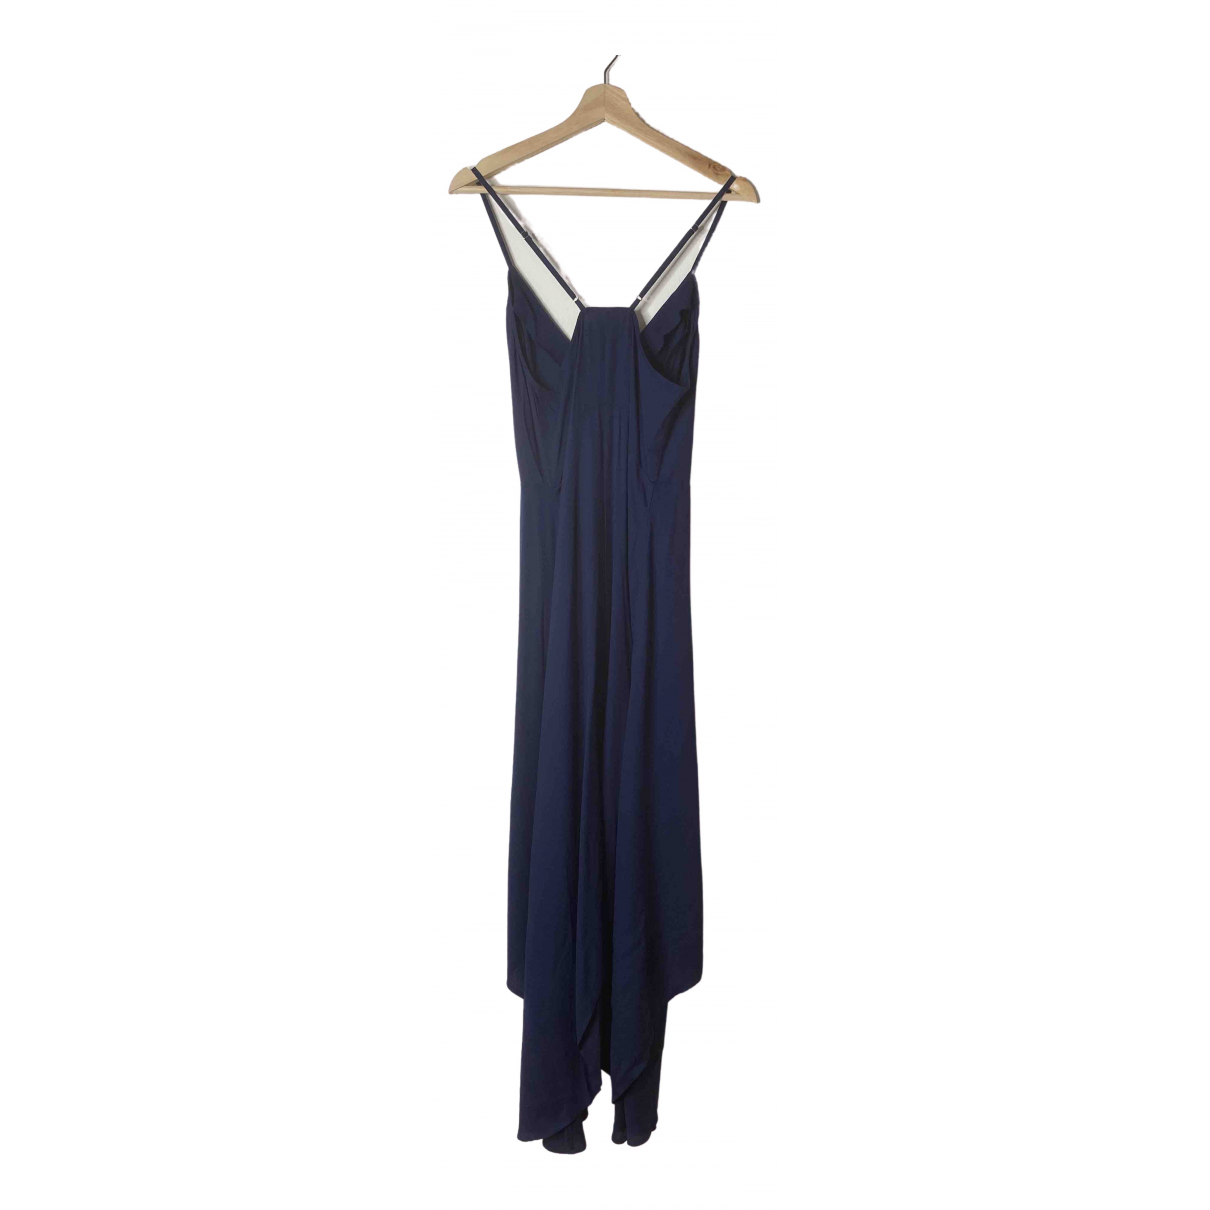 Reformation \N Navy dress for Women 8 US